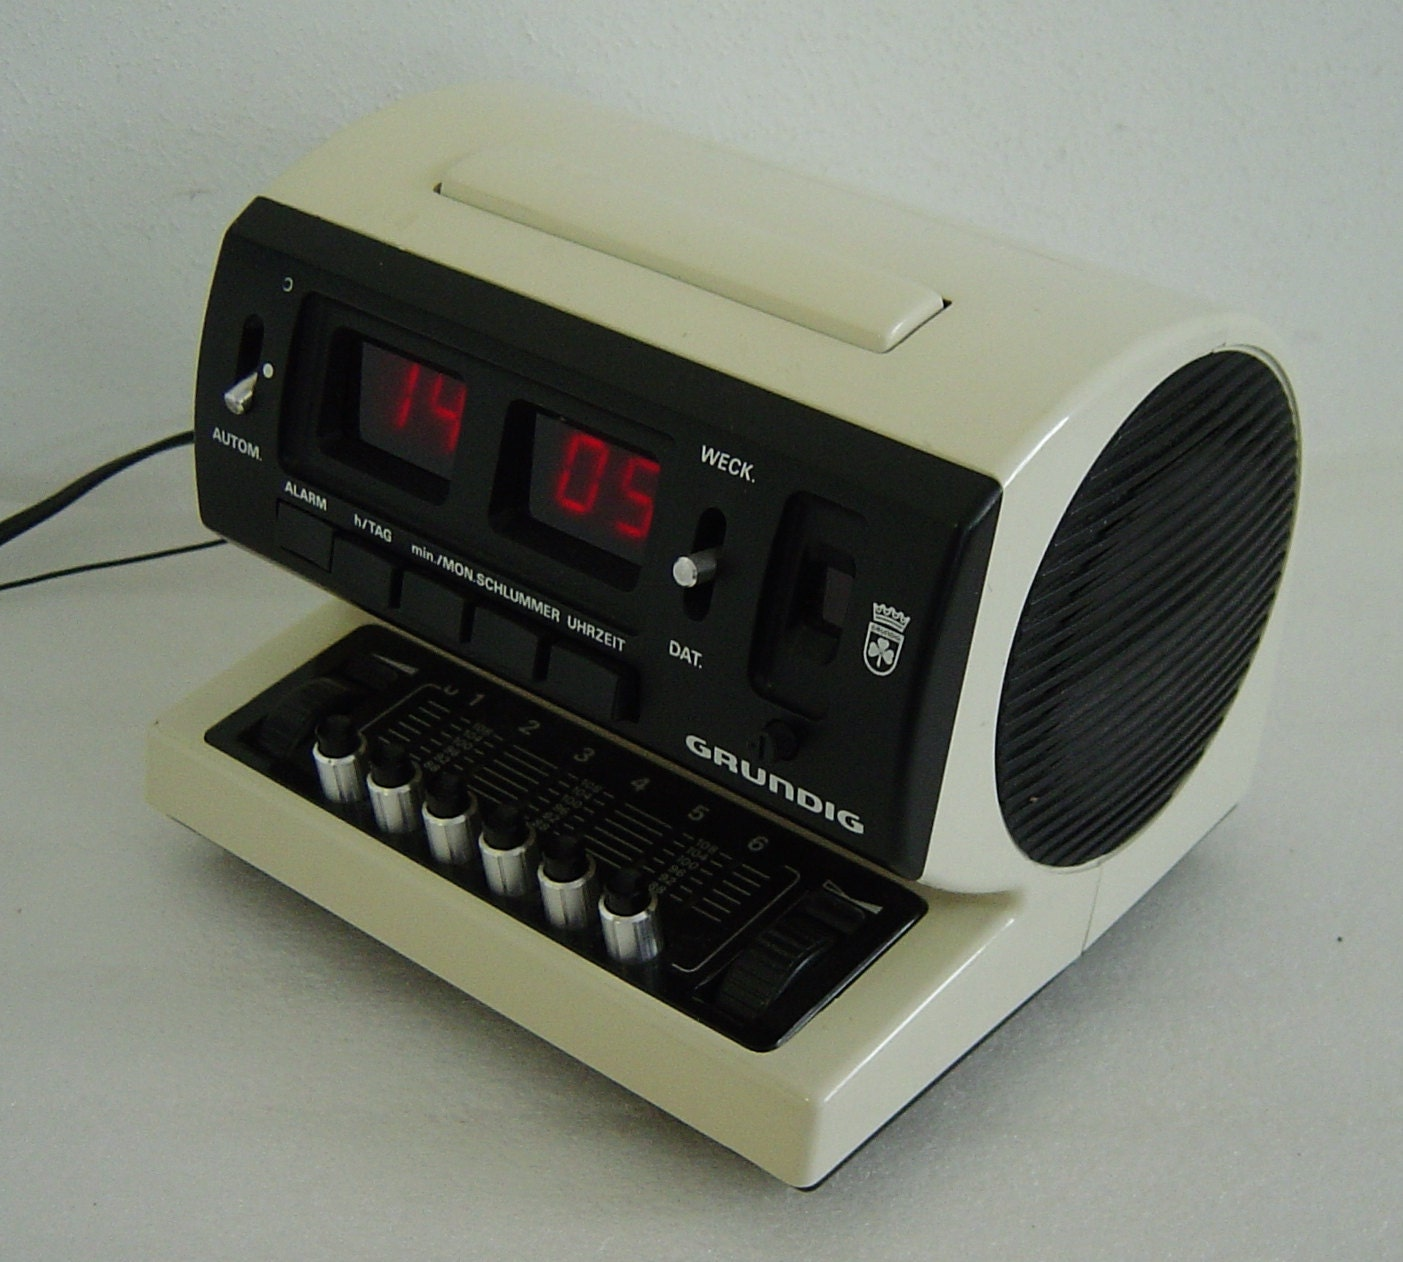 funky whitespace age radio alarm clock timer by hotlavabeach. Black Bedroom Furniture Sets. Home Design Ideas